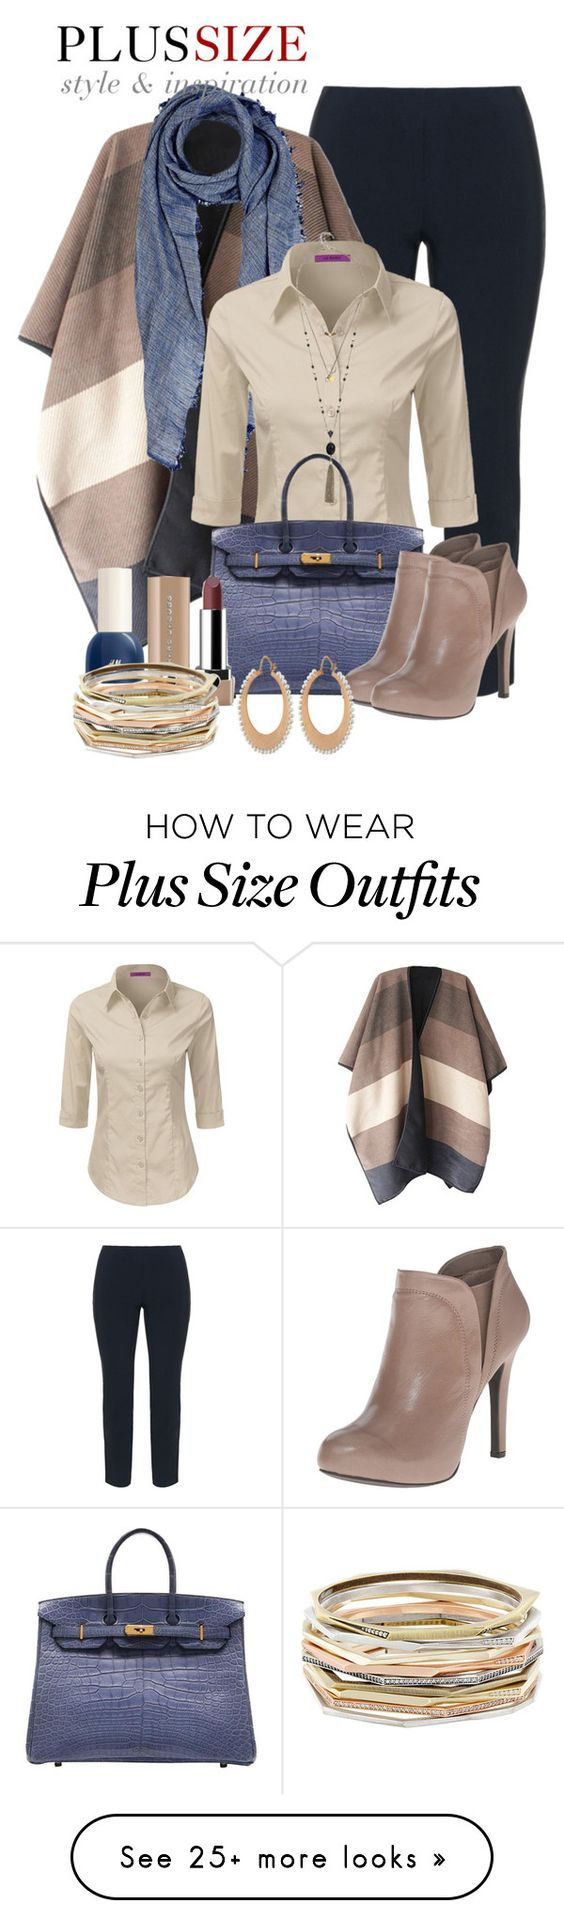 """Work Outfit -- #Plus Size"" by kimberlyn303 on Polyvore featuring Manon Baptiste, Barneys New York, Hermès, GUESS, H&M, Marc Jacobs, Irene Neuwirth and Kendra Scott"